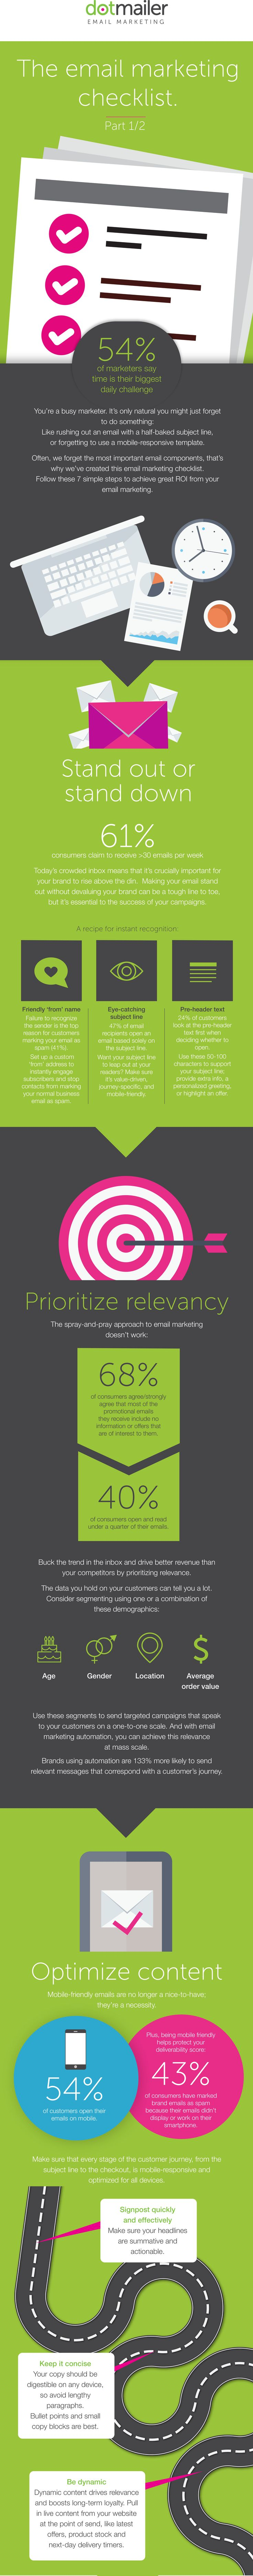 Infographic The email marketing checklist dotmailer